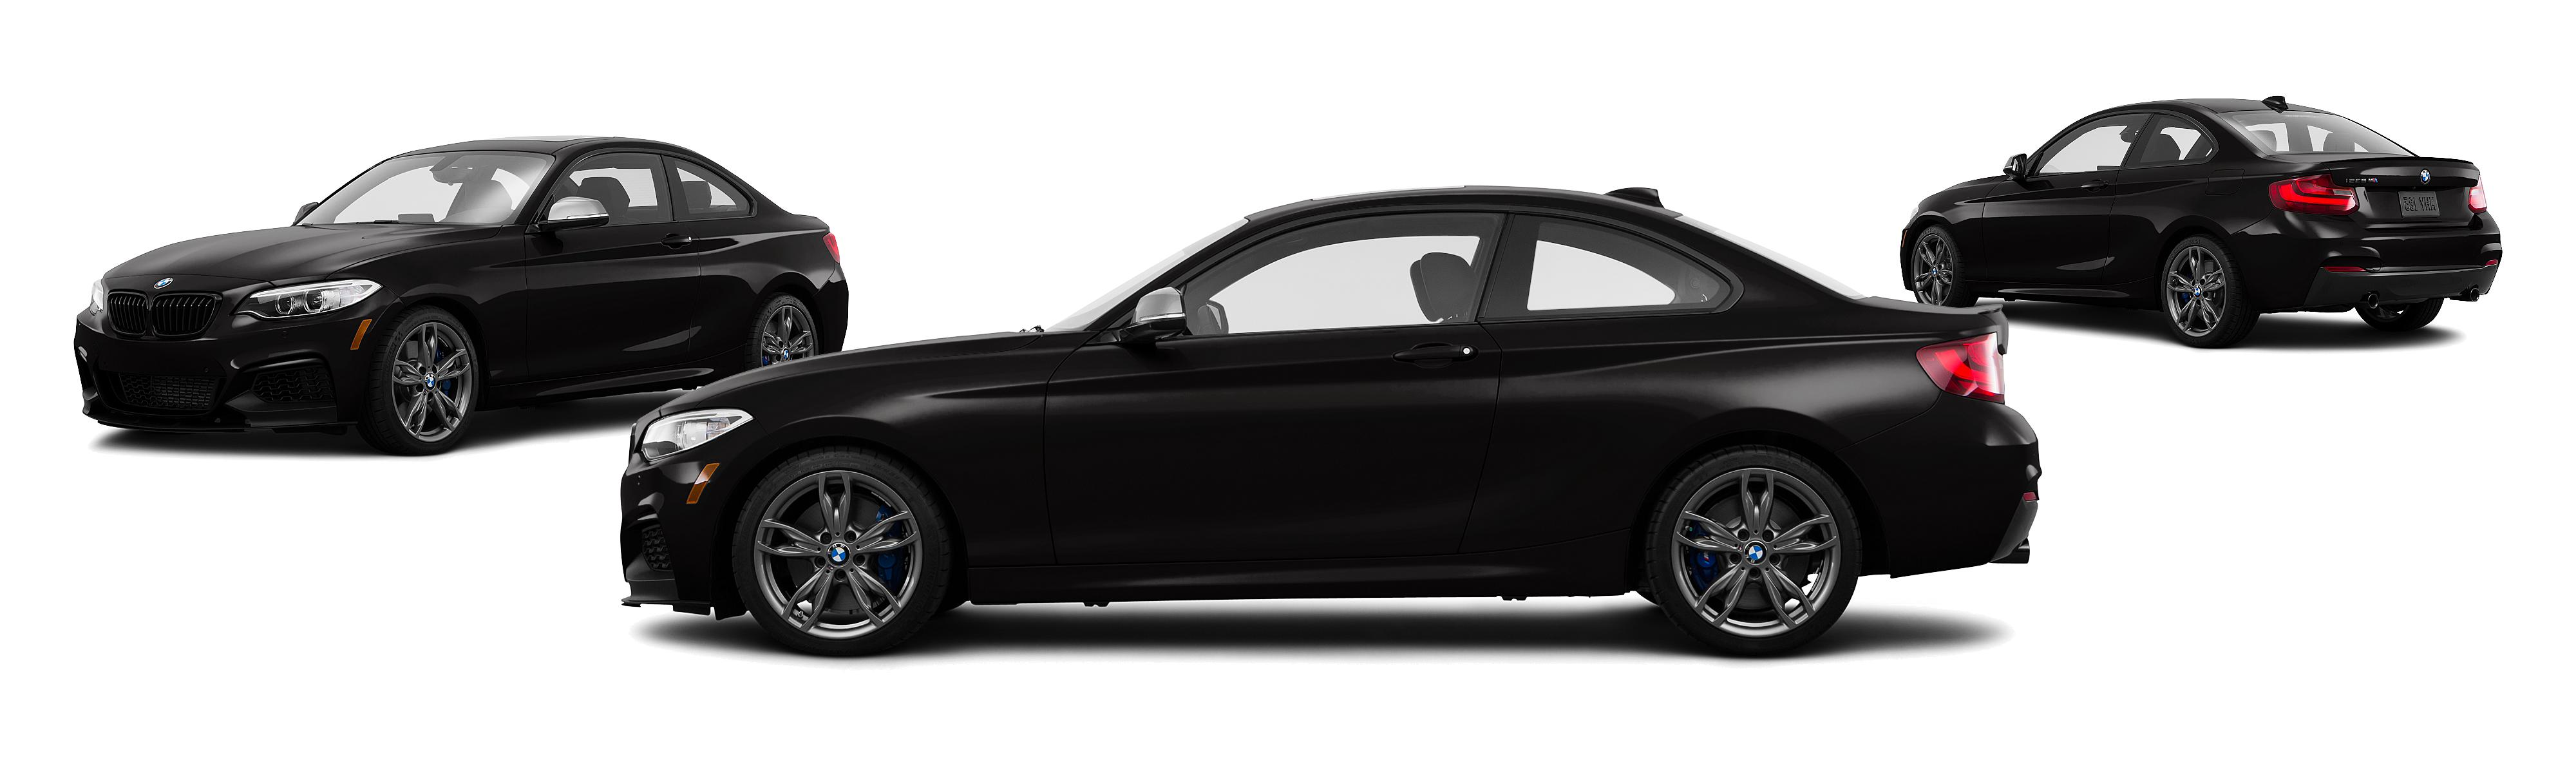 excellent come basic appealing review form pfaff img while sport eight speed and find that most bmw in s the i auto especially its fitted with why so lease